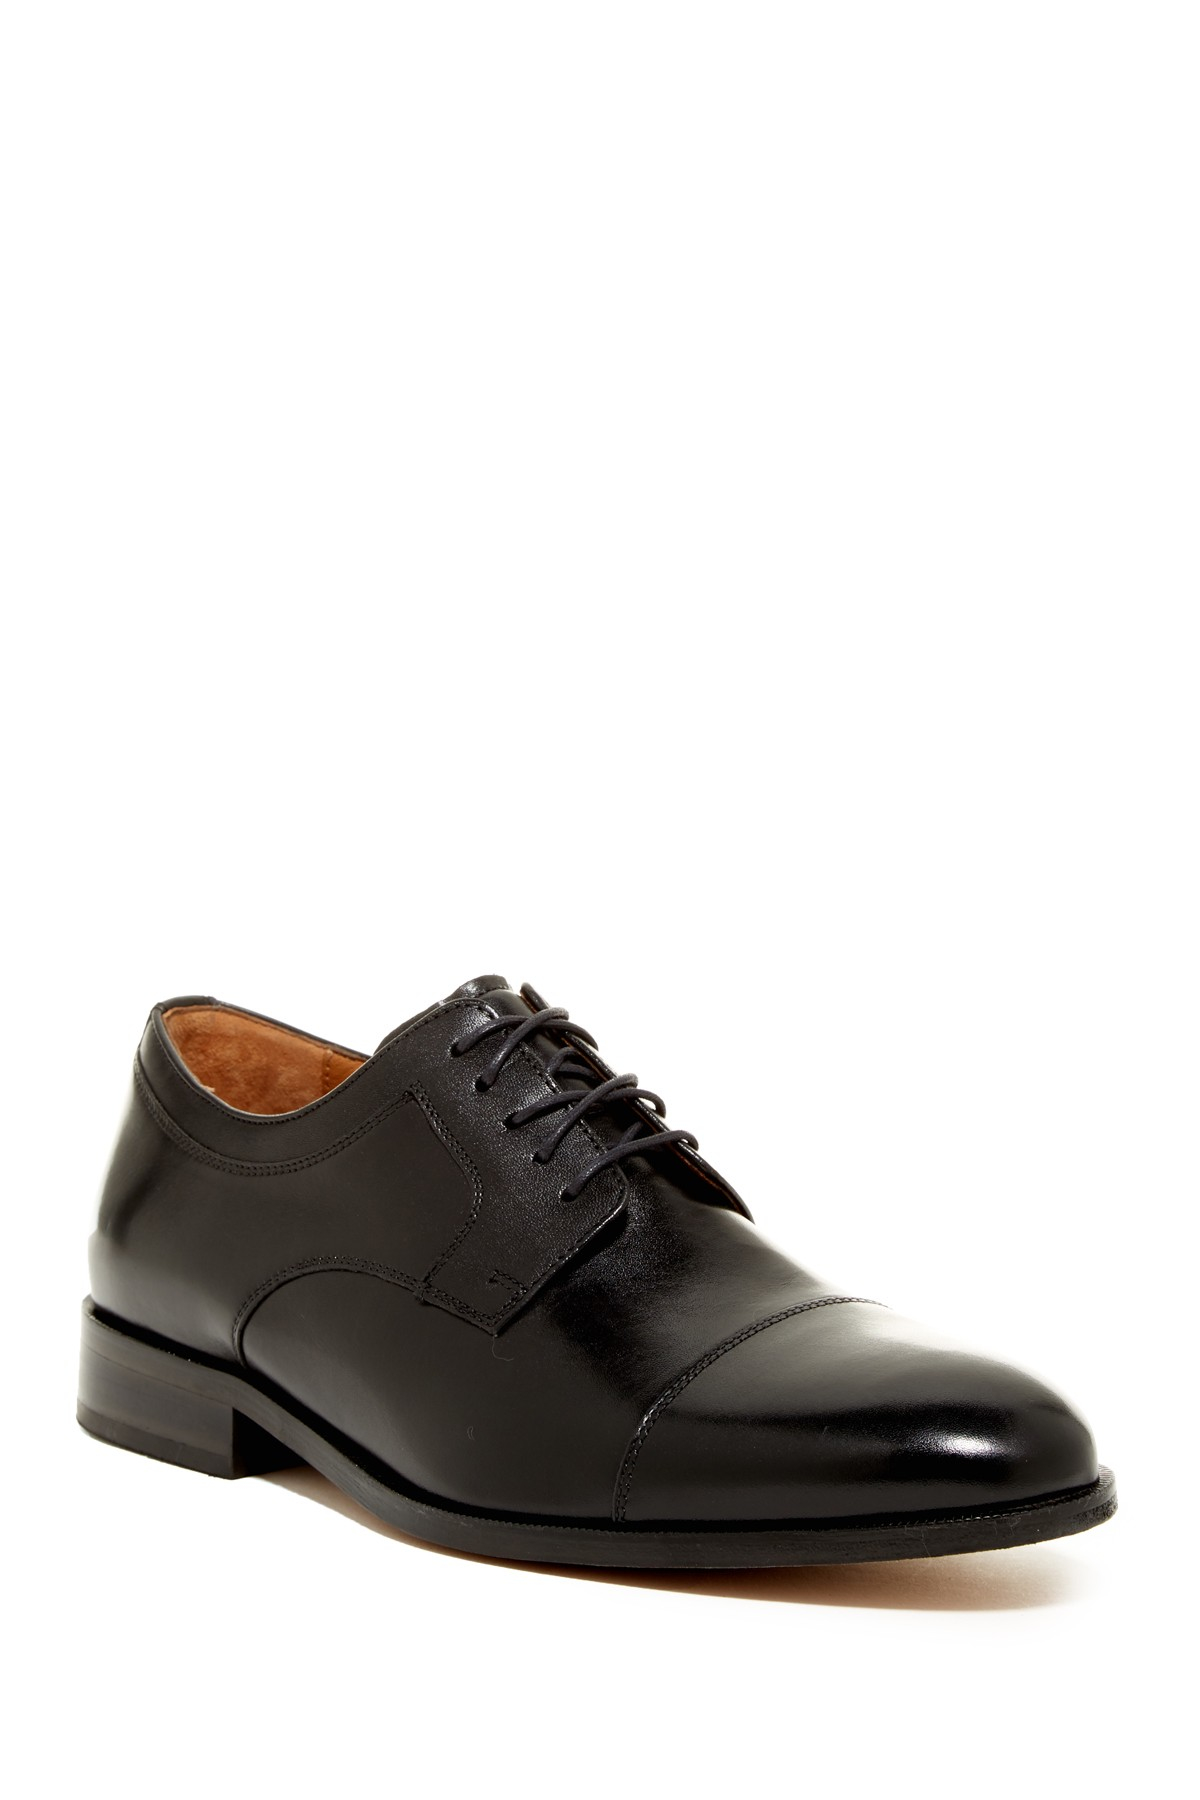 Nordstrom Rack Mens All Black Shoes